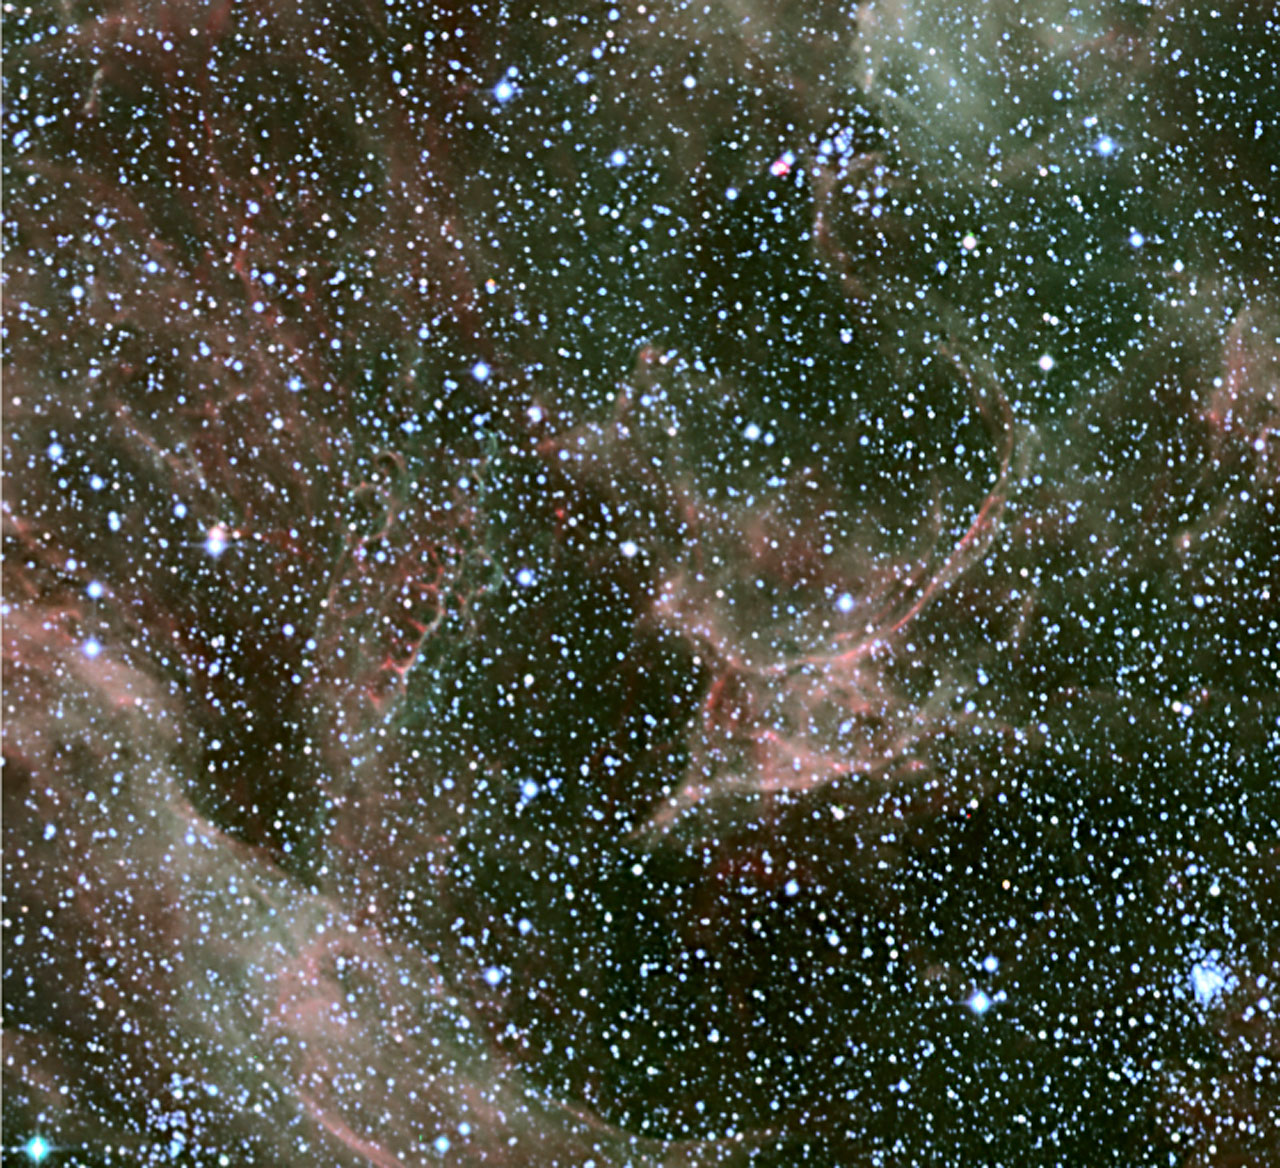 SN 1987A and the Honeycomb Nebula